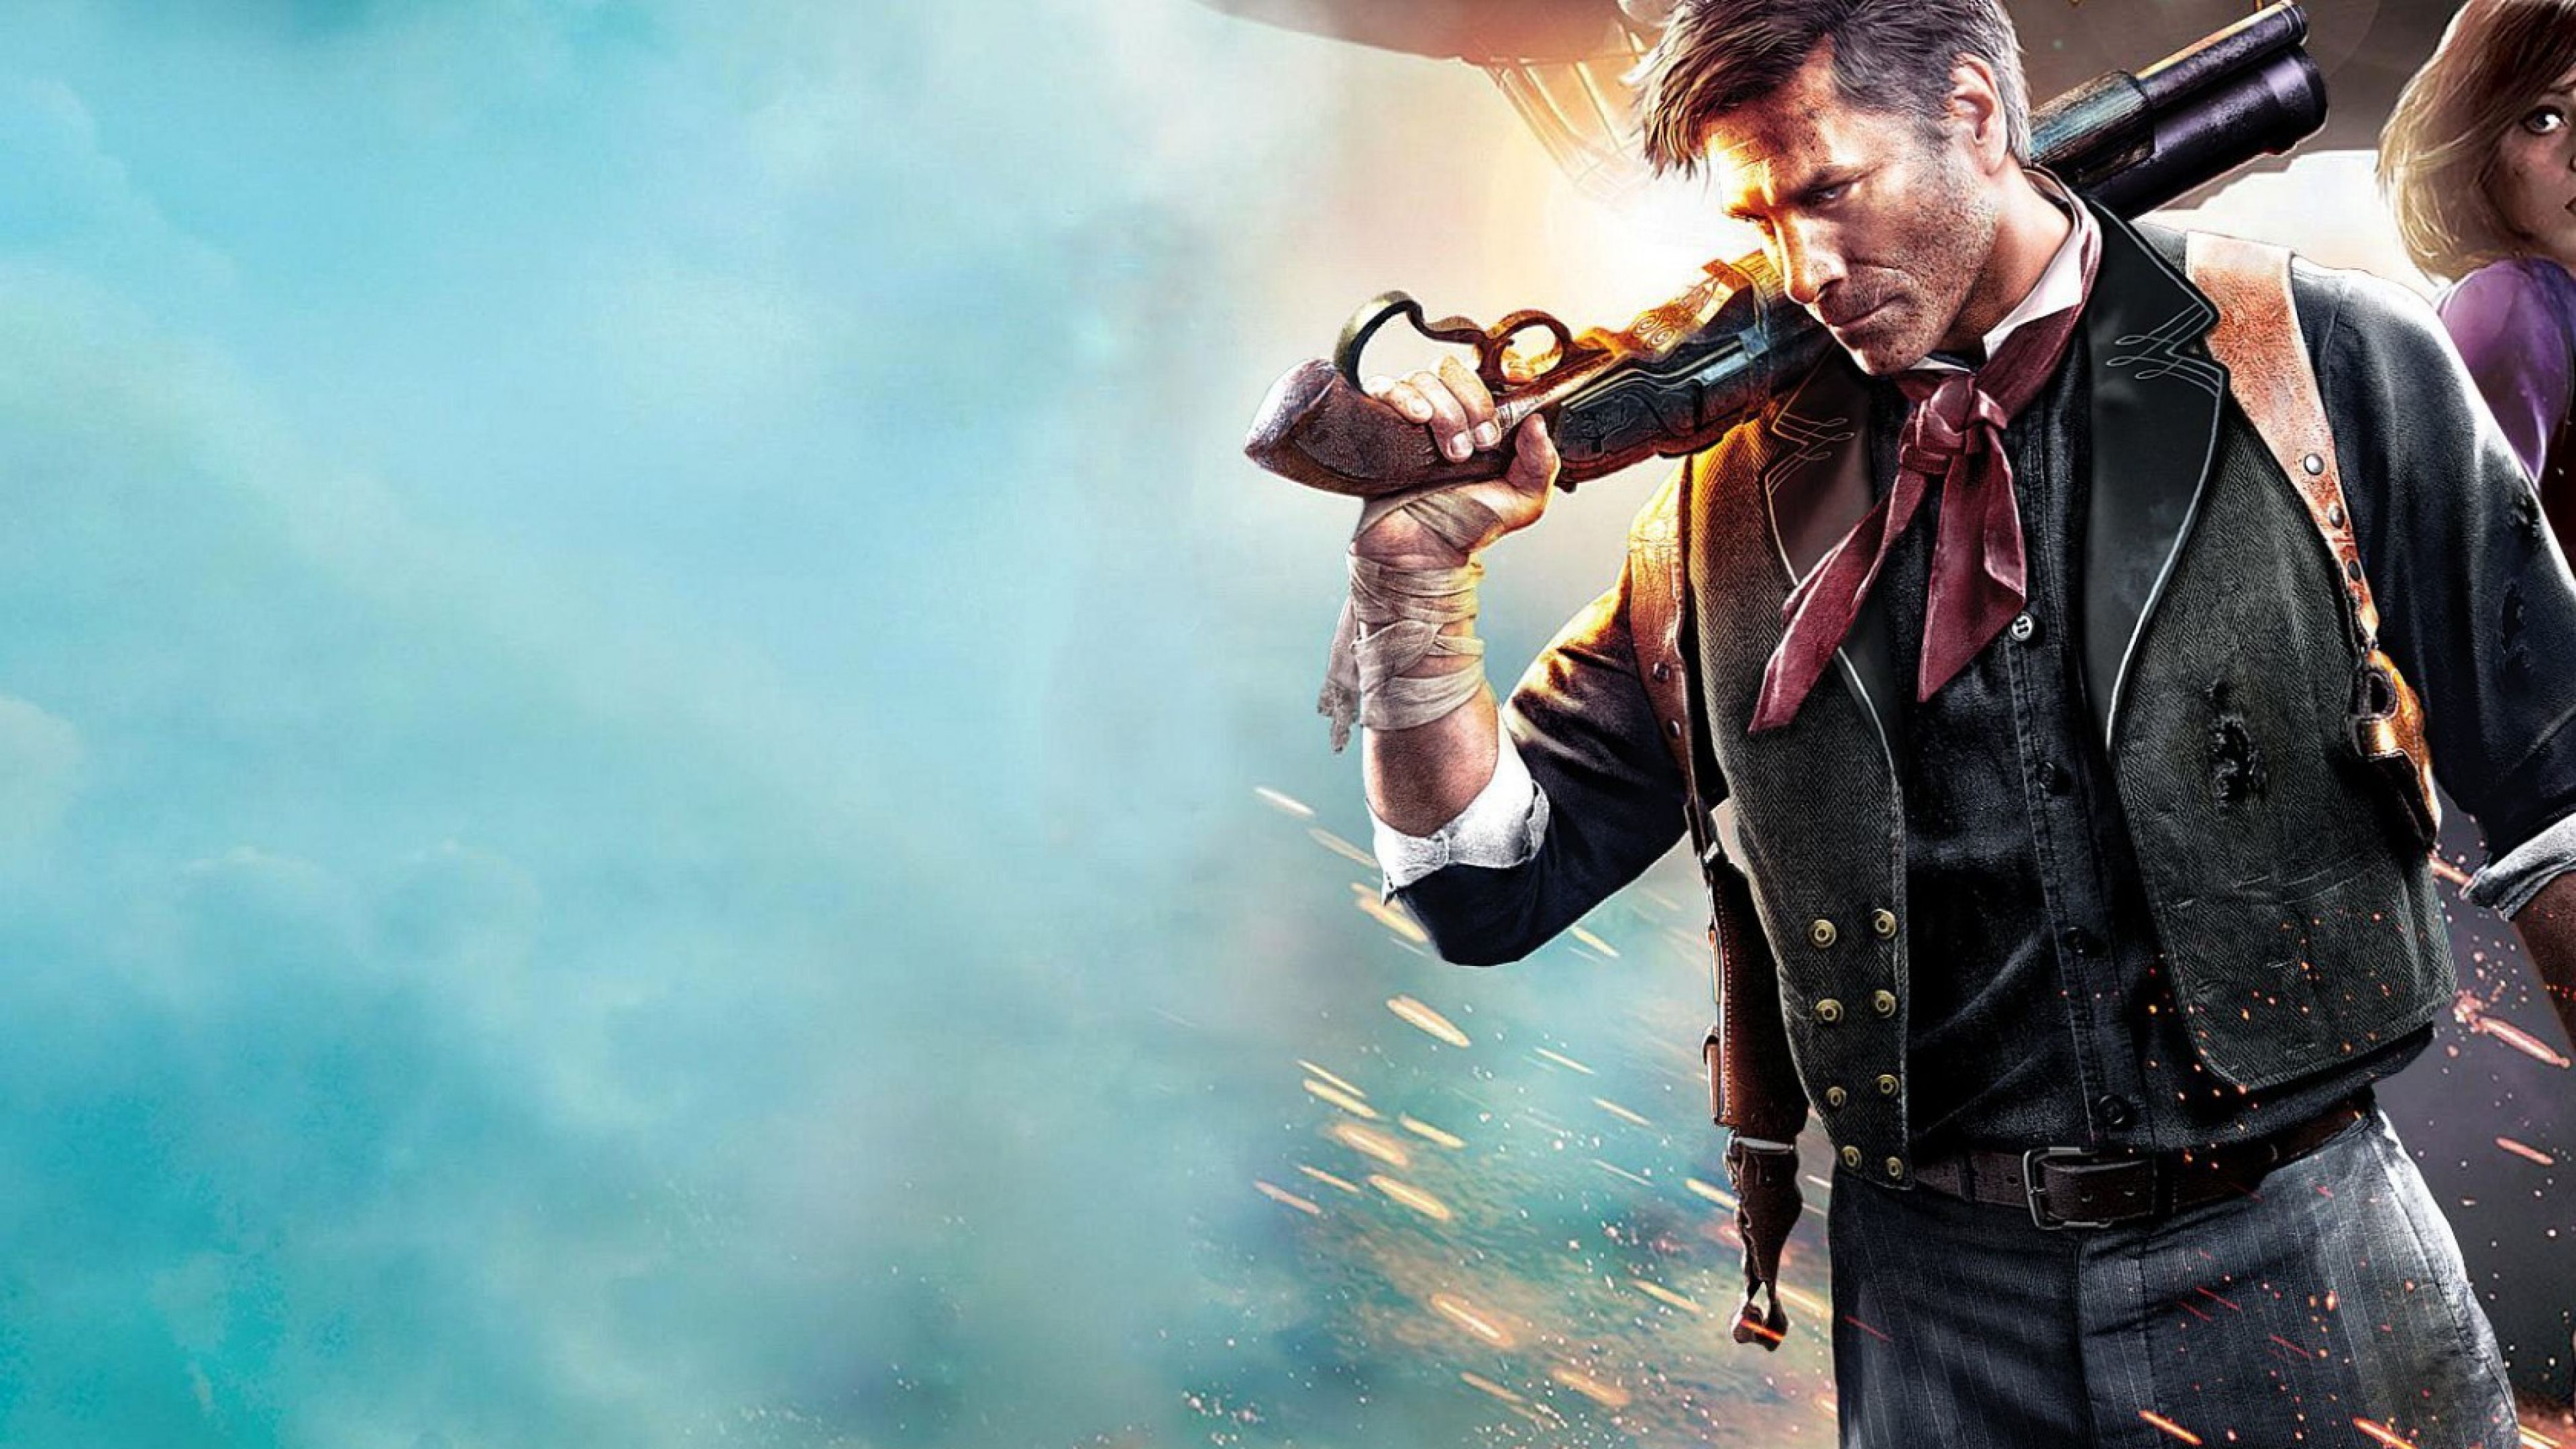 Download Wallpaper 3840x2160 Bioshock infinite, Elizabeth, Booker